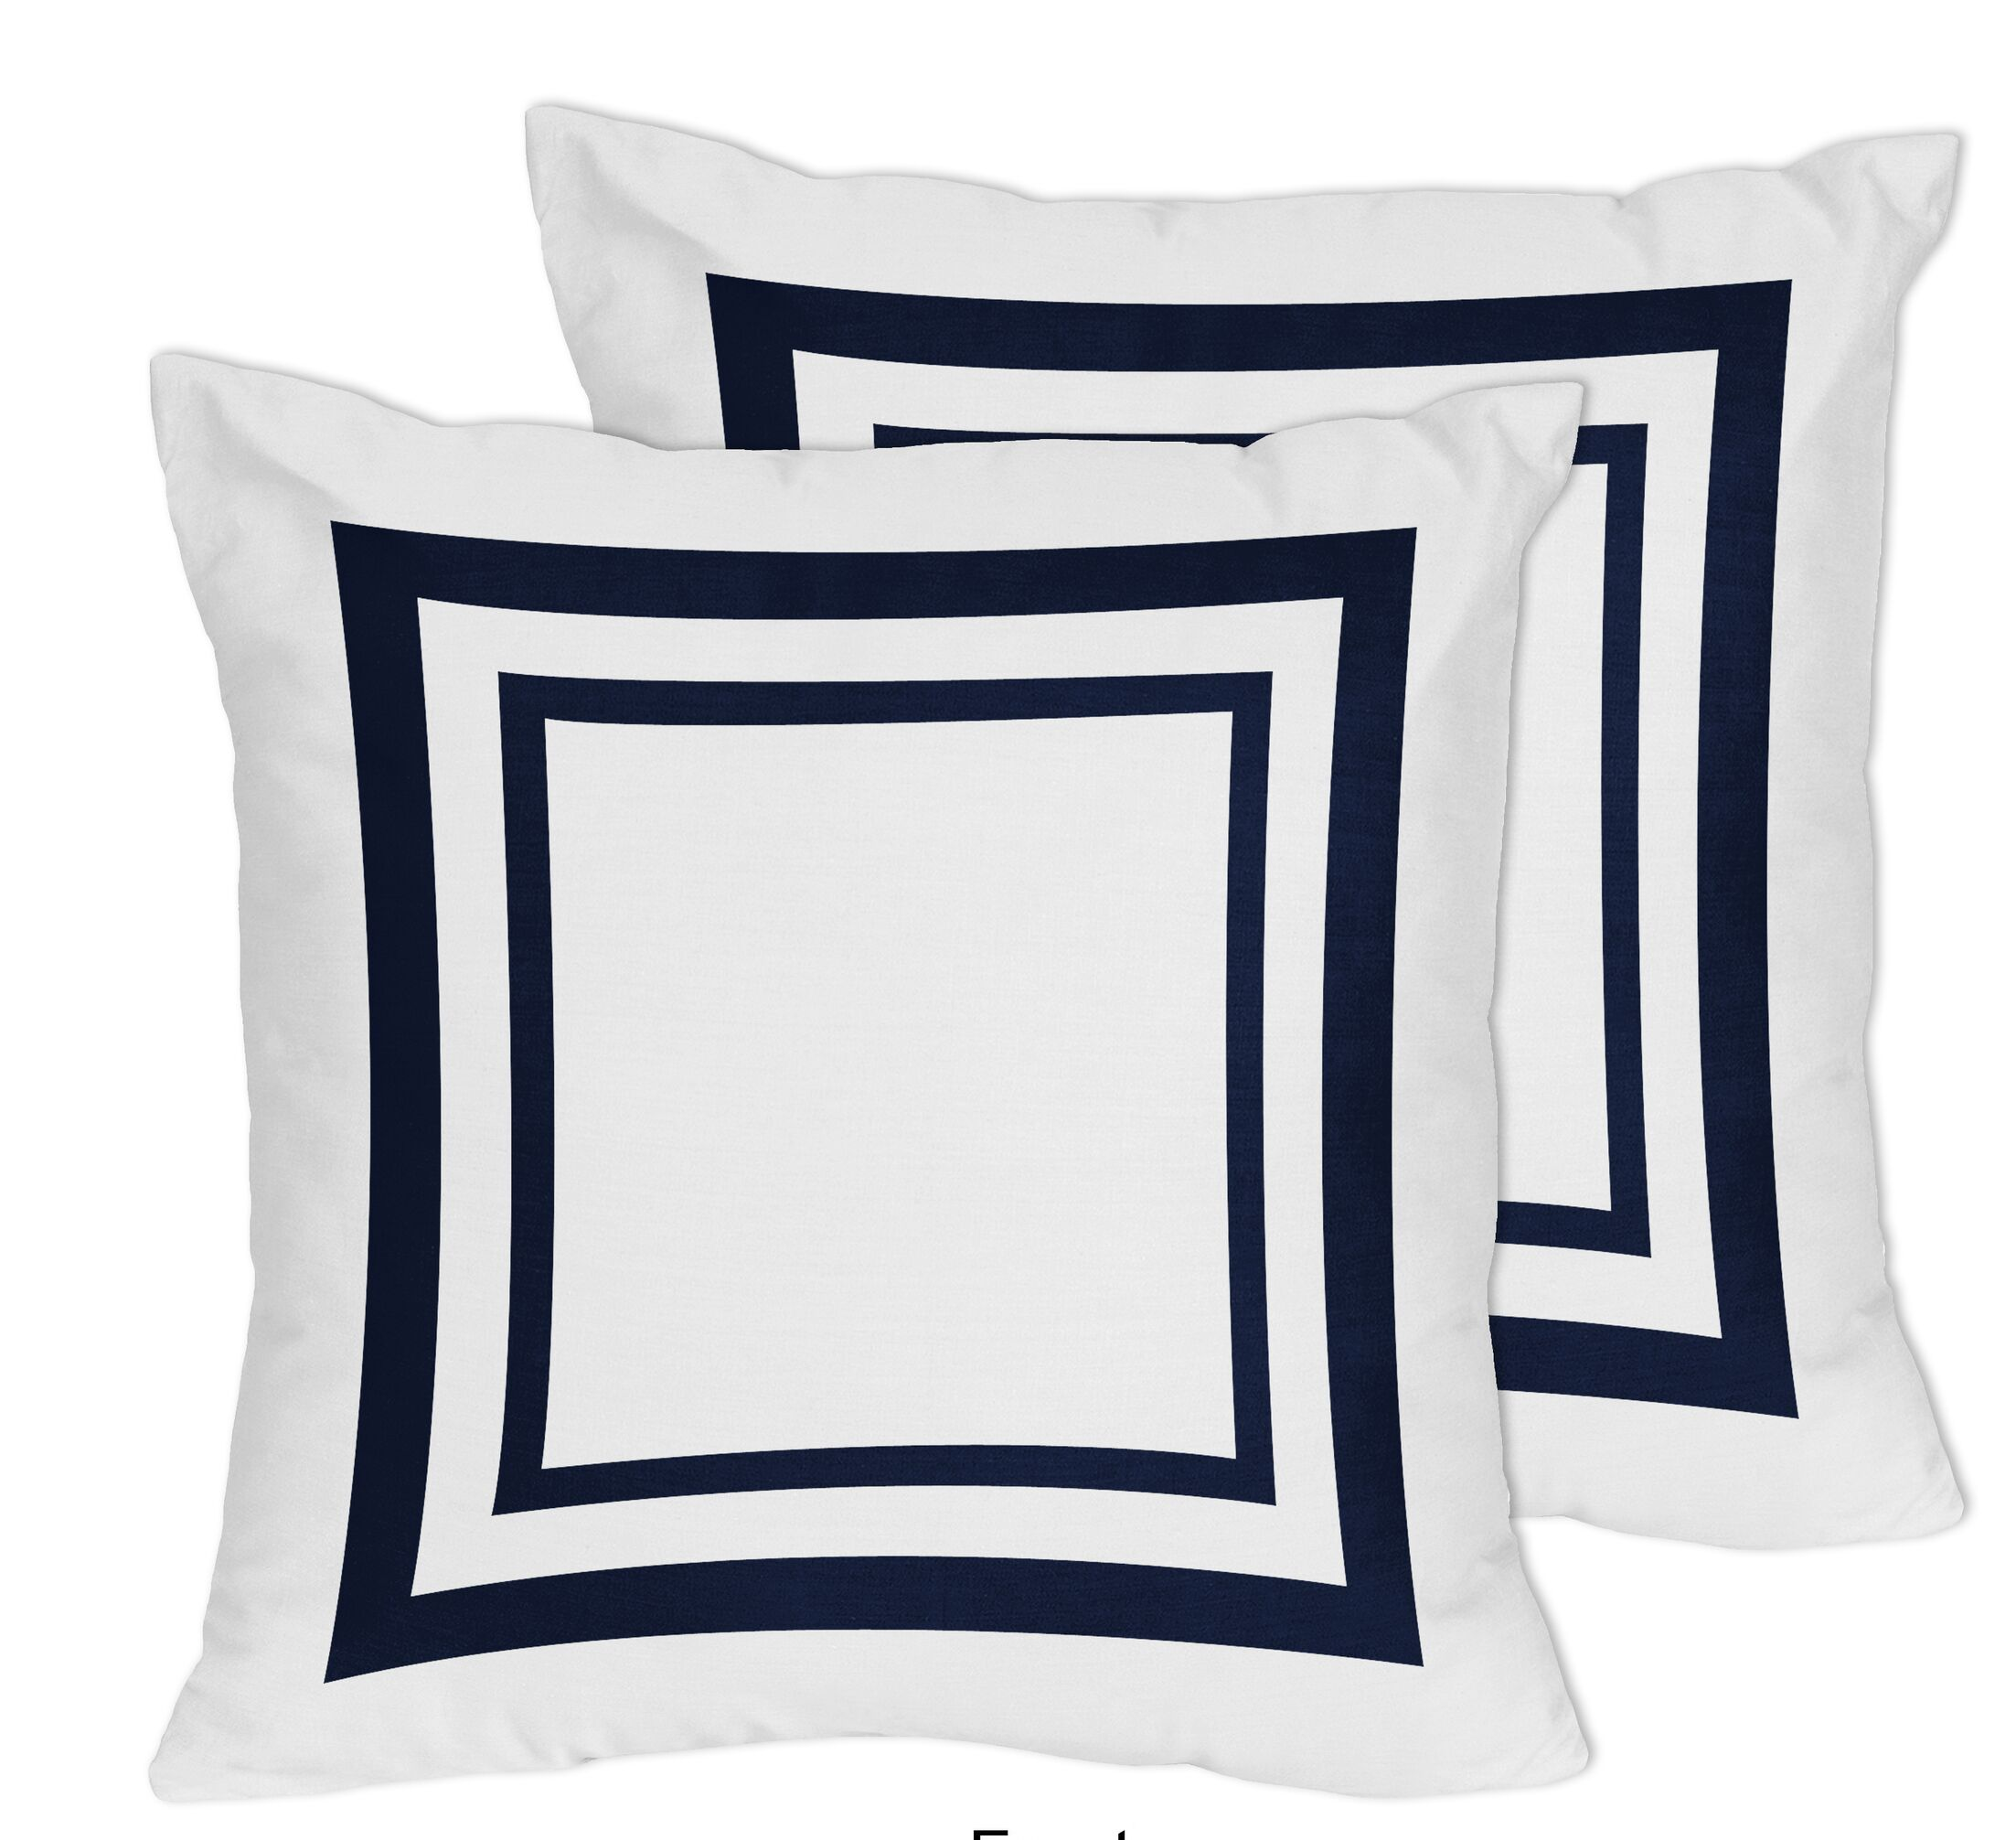 Anchors Away Decorative Accent Cotton Throw Pillow